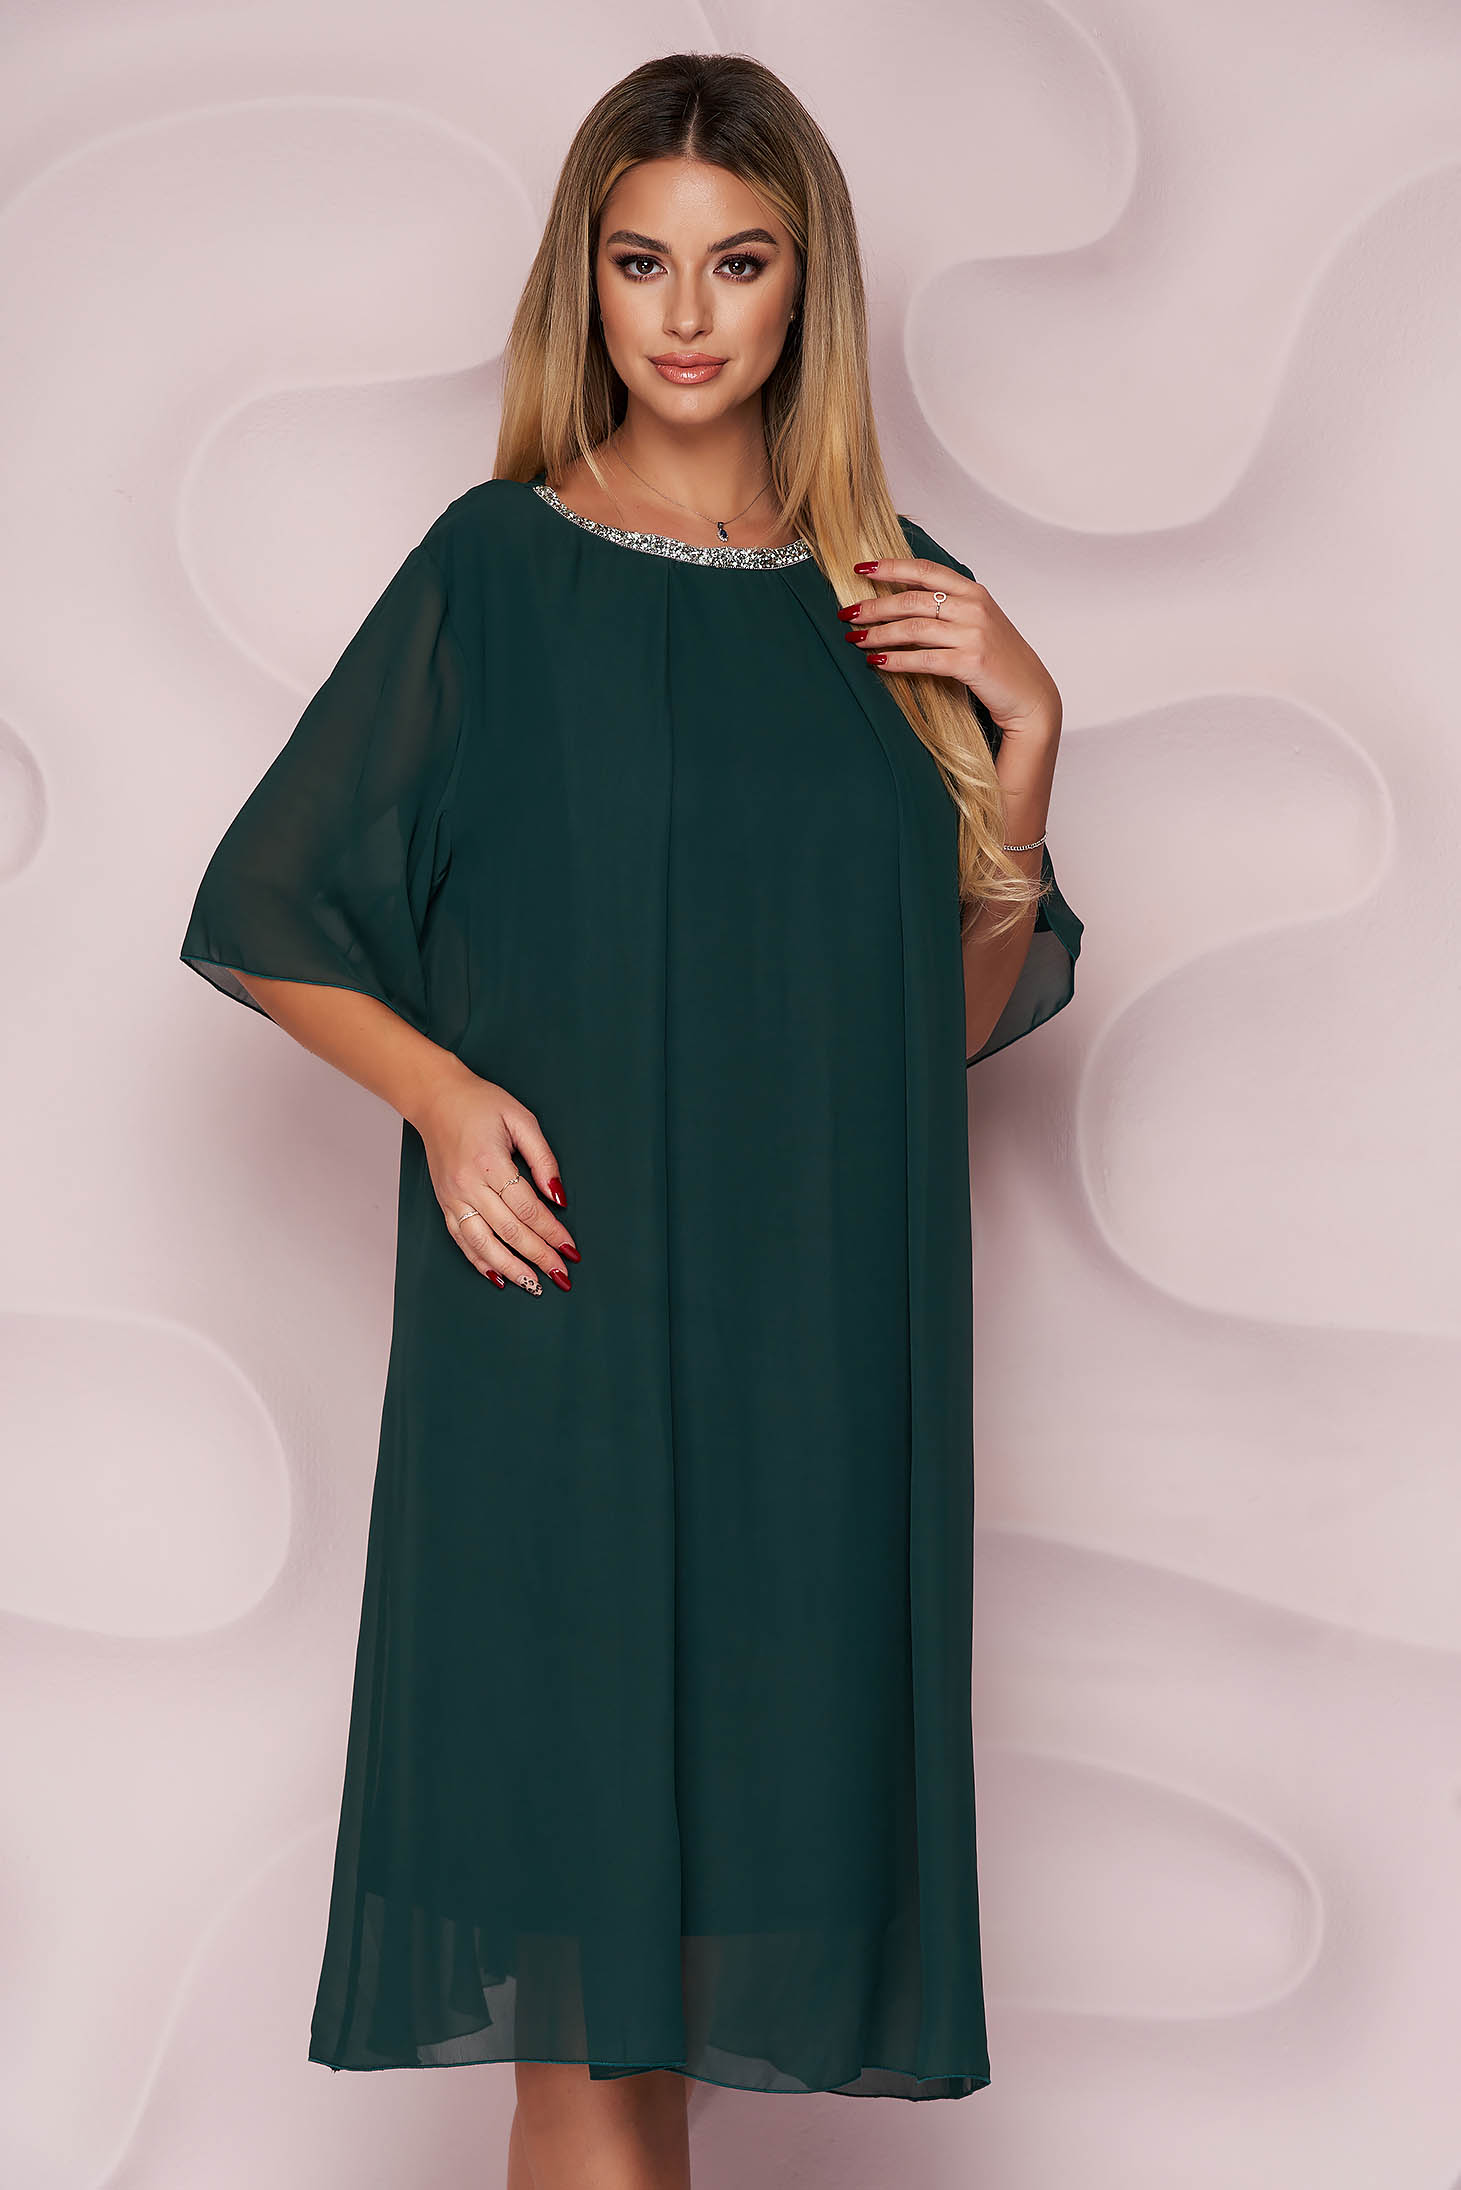 From veil fabric midi loose fit with crystal embellished details green dress occasional